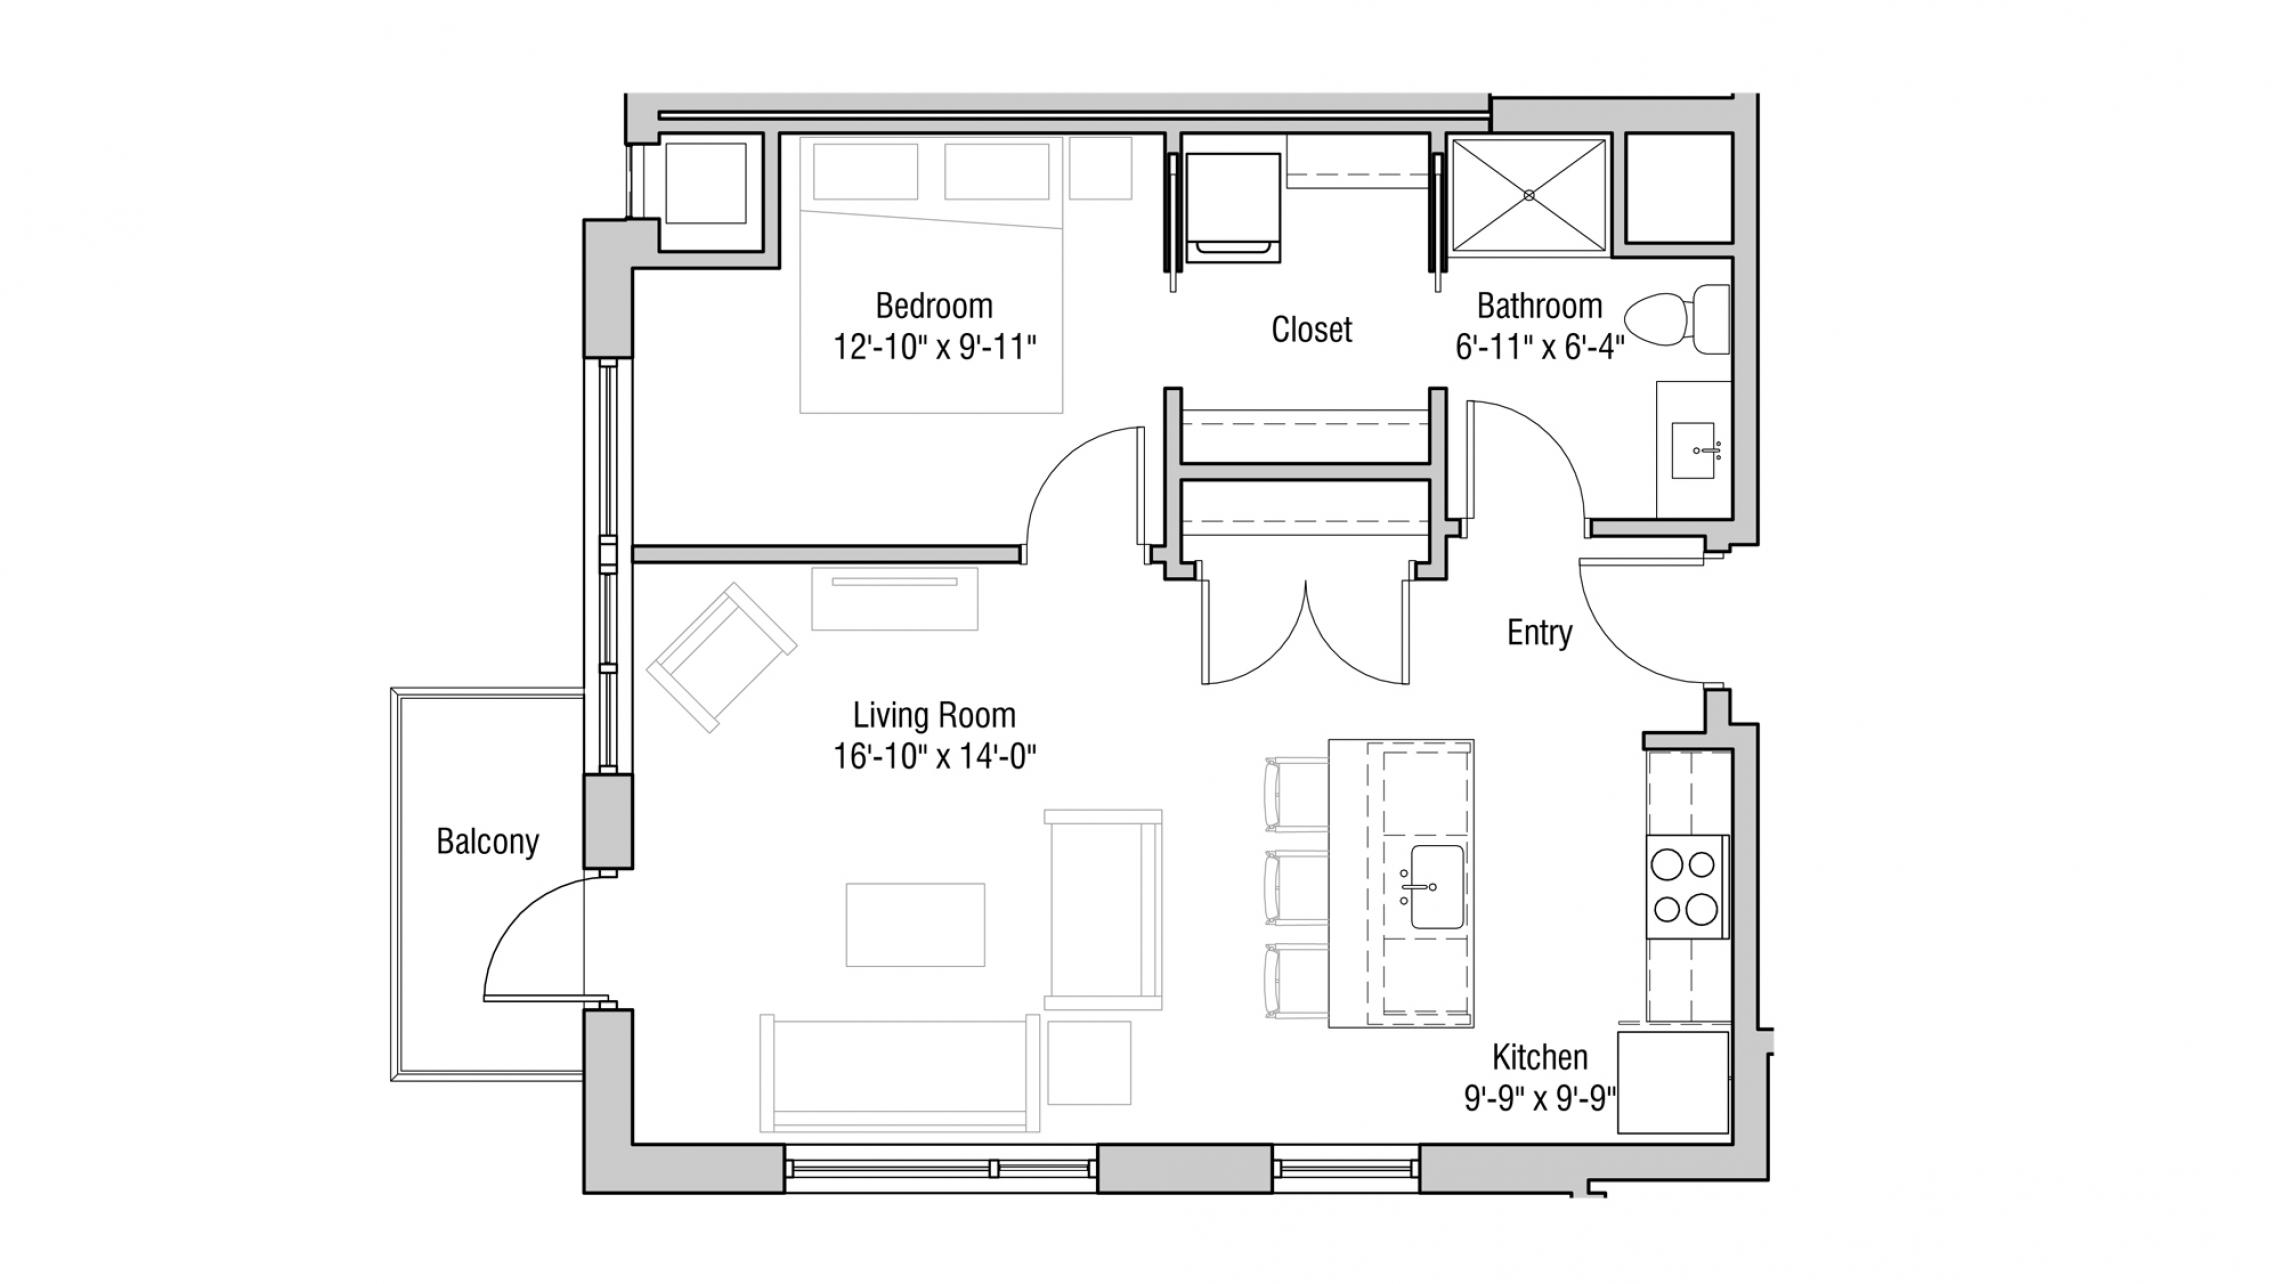 ULI Quarter Row 102 - One Bedroom, One Bathroom